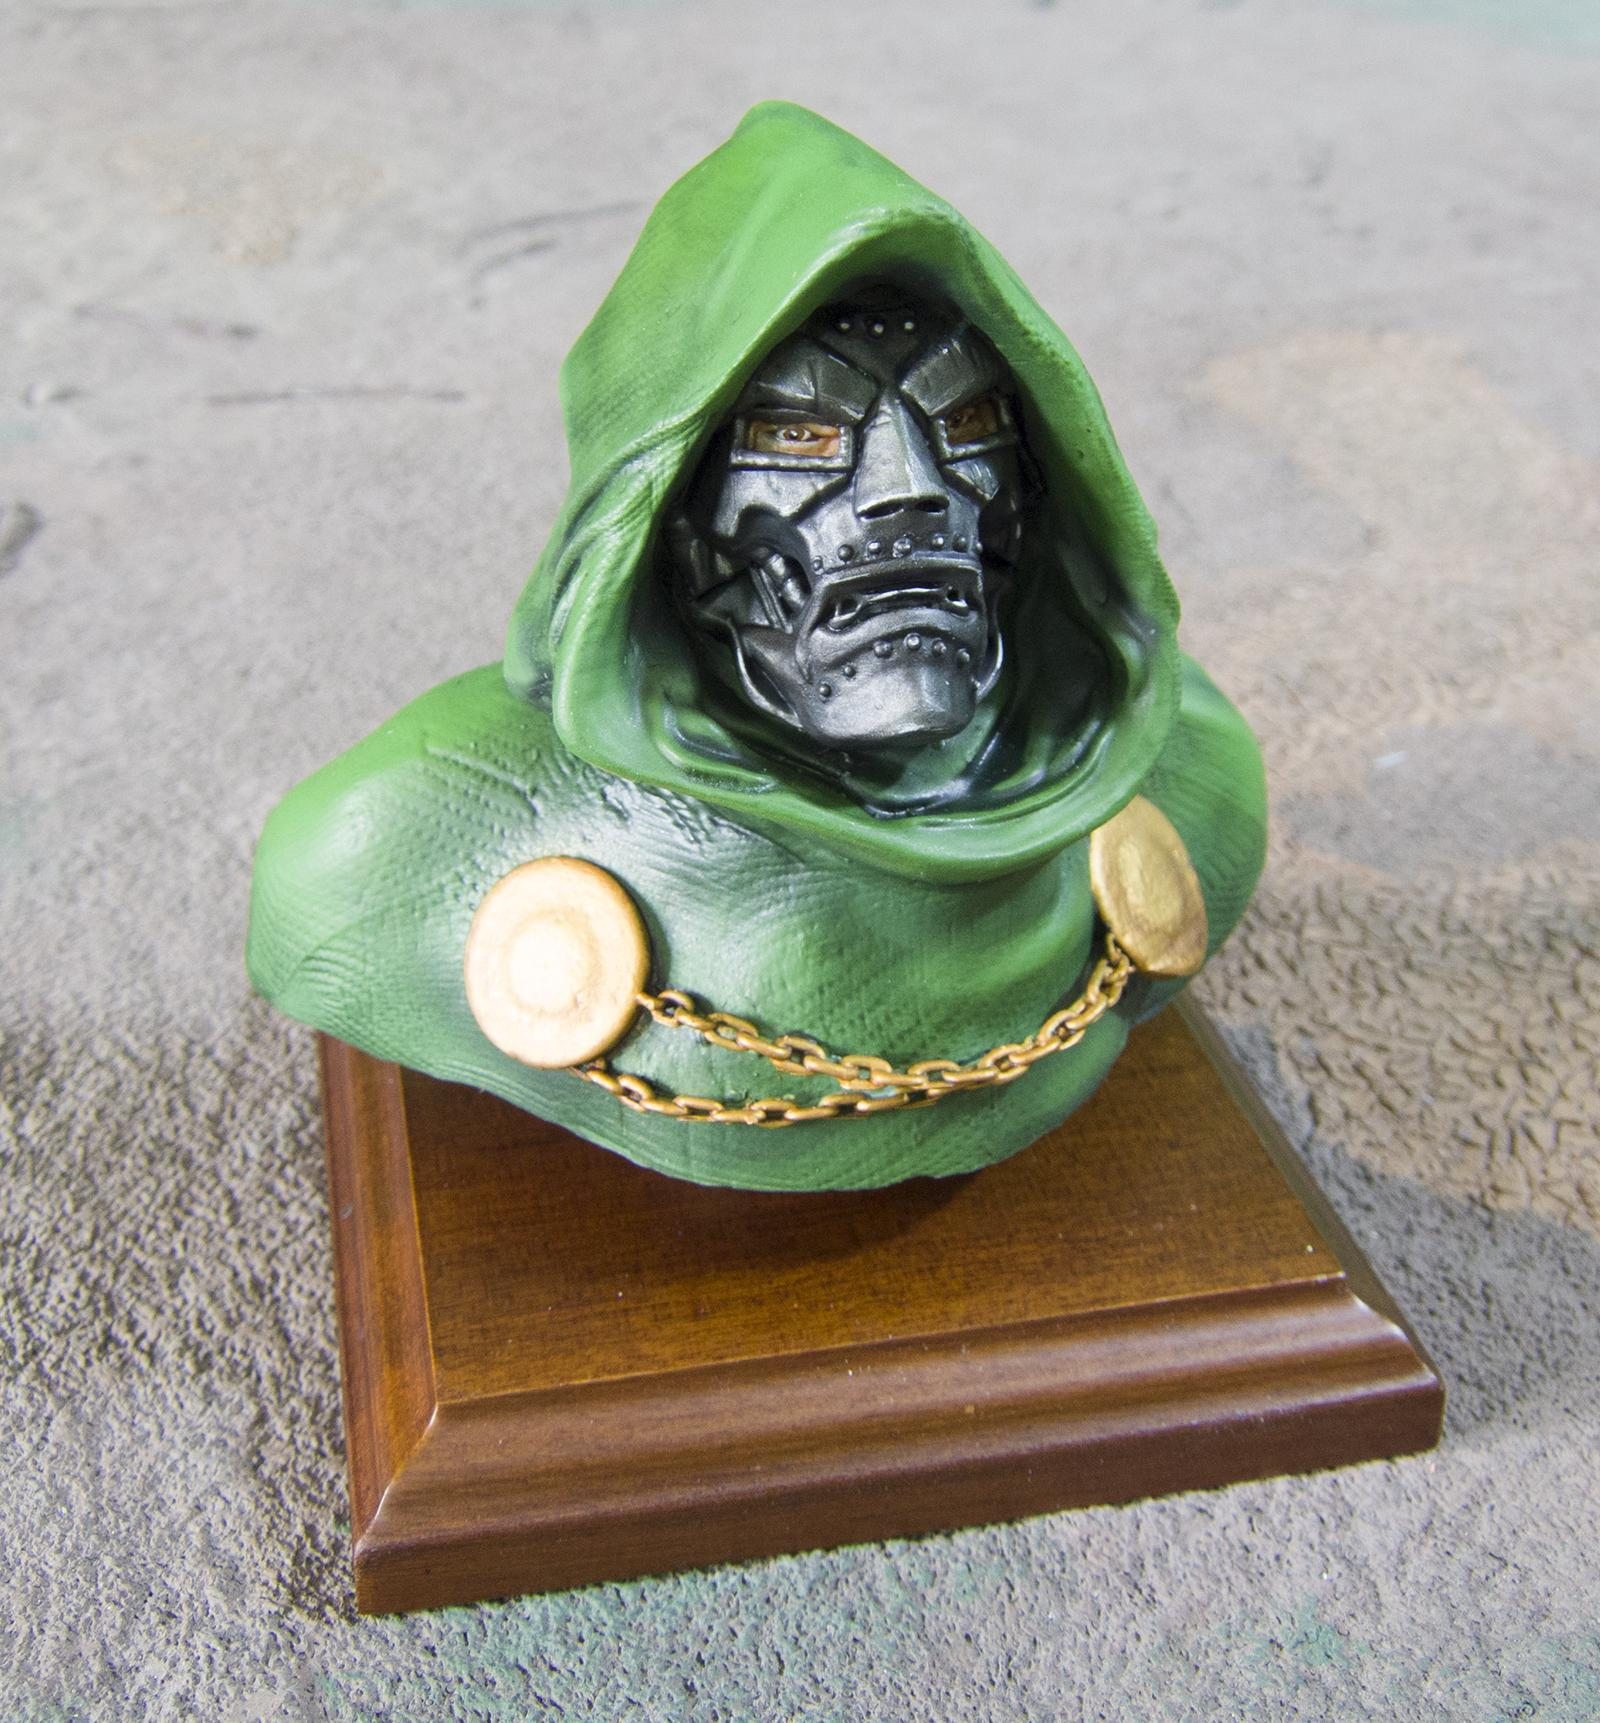 3d Printing, Anycubic Photon, Dlp, Dr Doom, Dr. Doom, Gambody, Kneel Before Doom, Resin